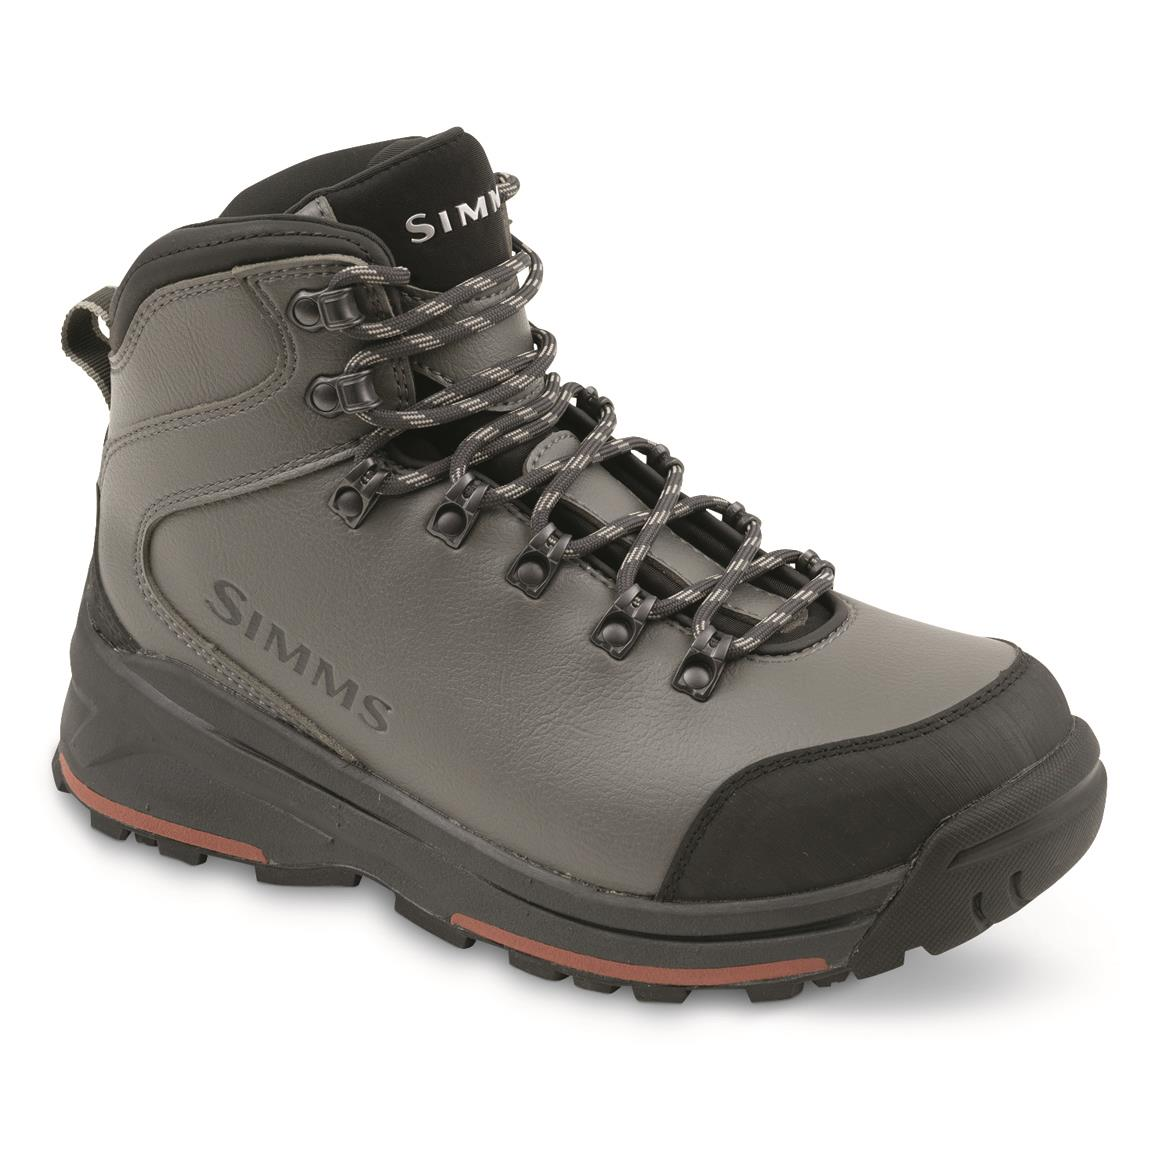 Simms Women's Freestone Wading Boots, Rubber Soles, Gunmetal